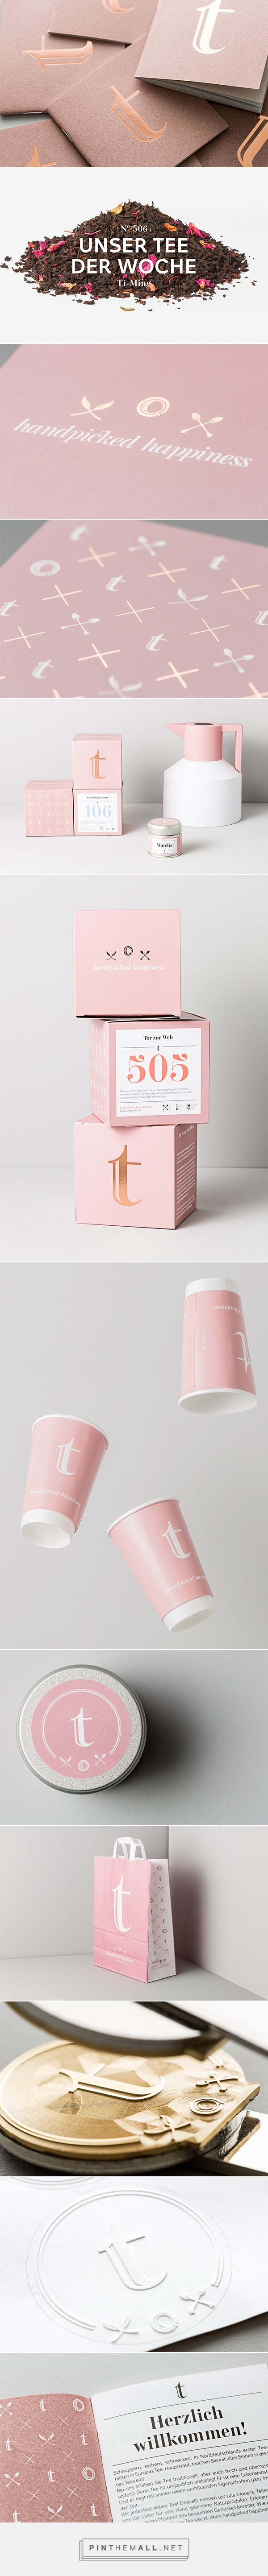 t on Behance... - a grouped images picture - Pin Them All